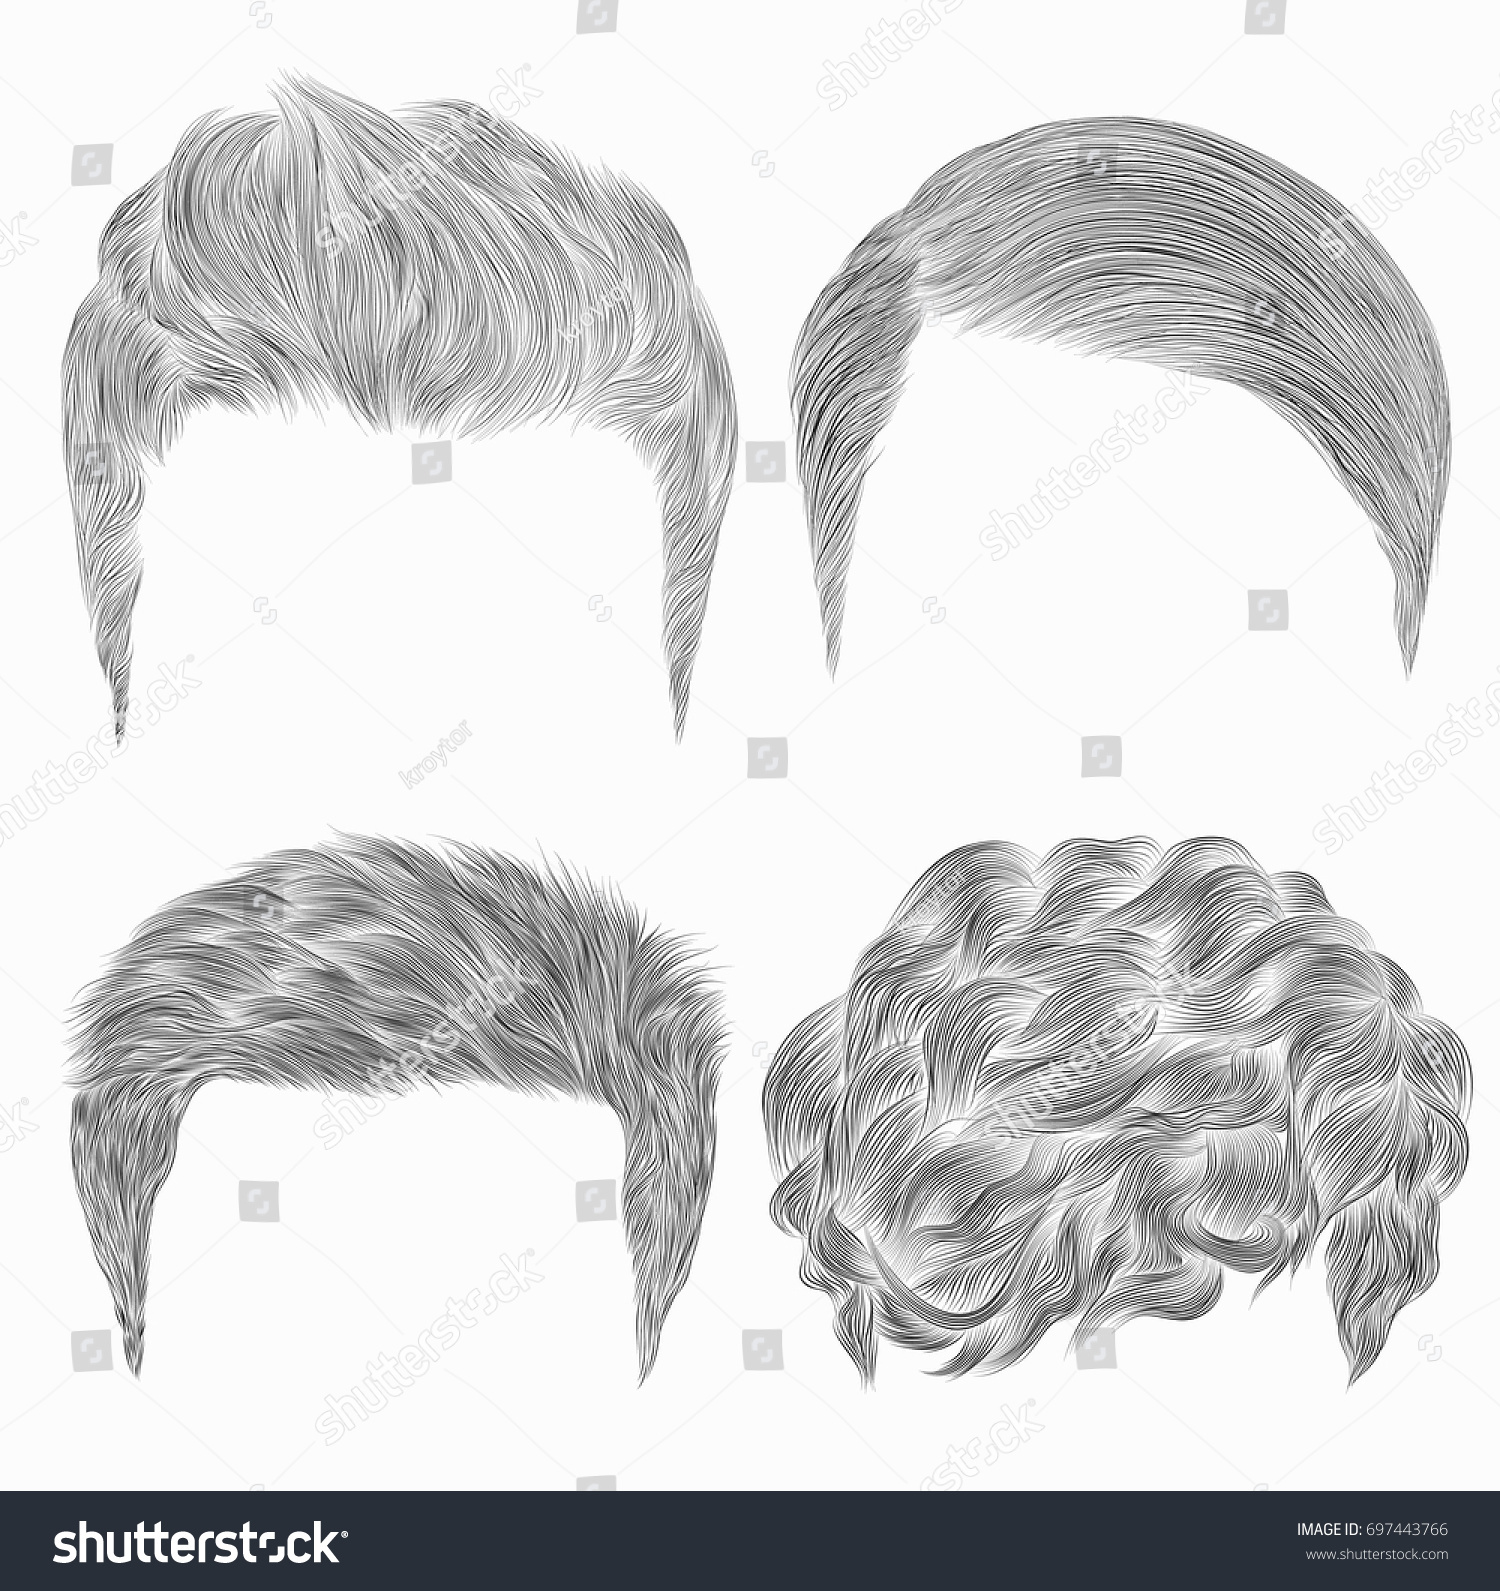 set different trendy mens hairstyles sketches stock vector (royalty